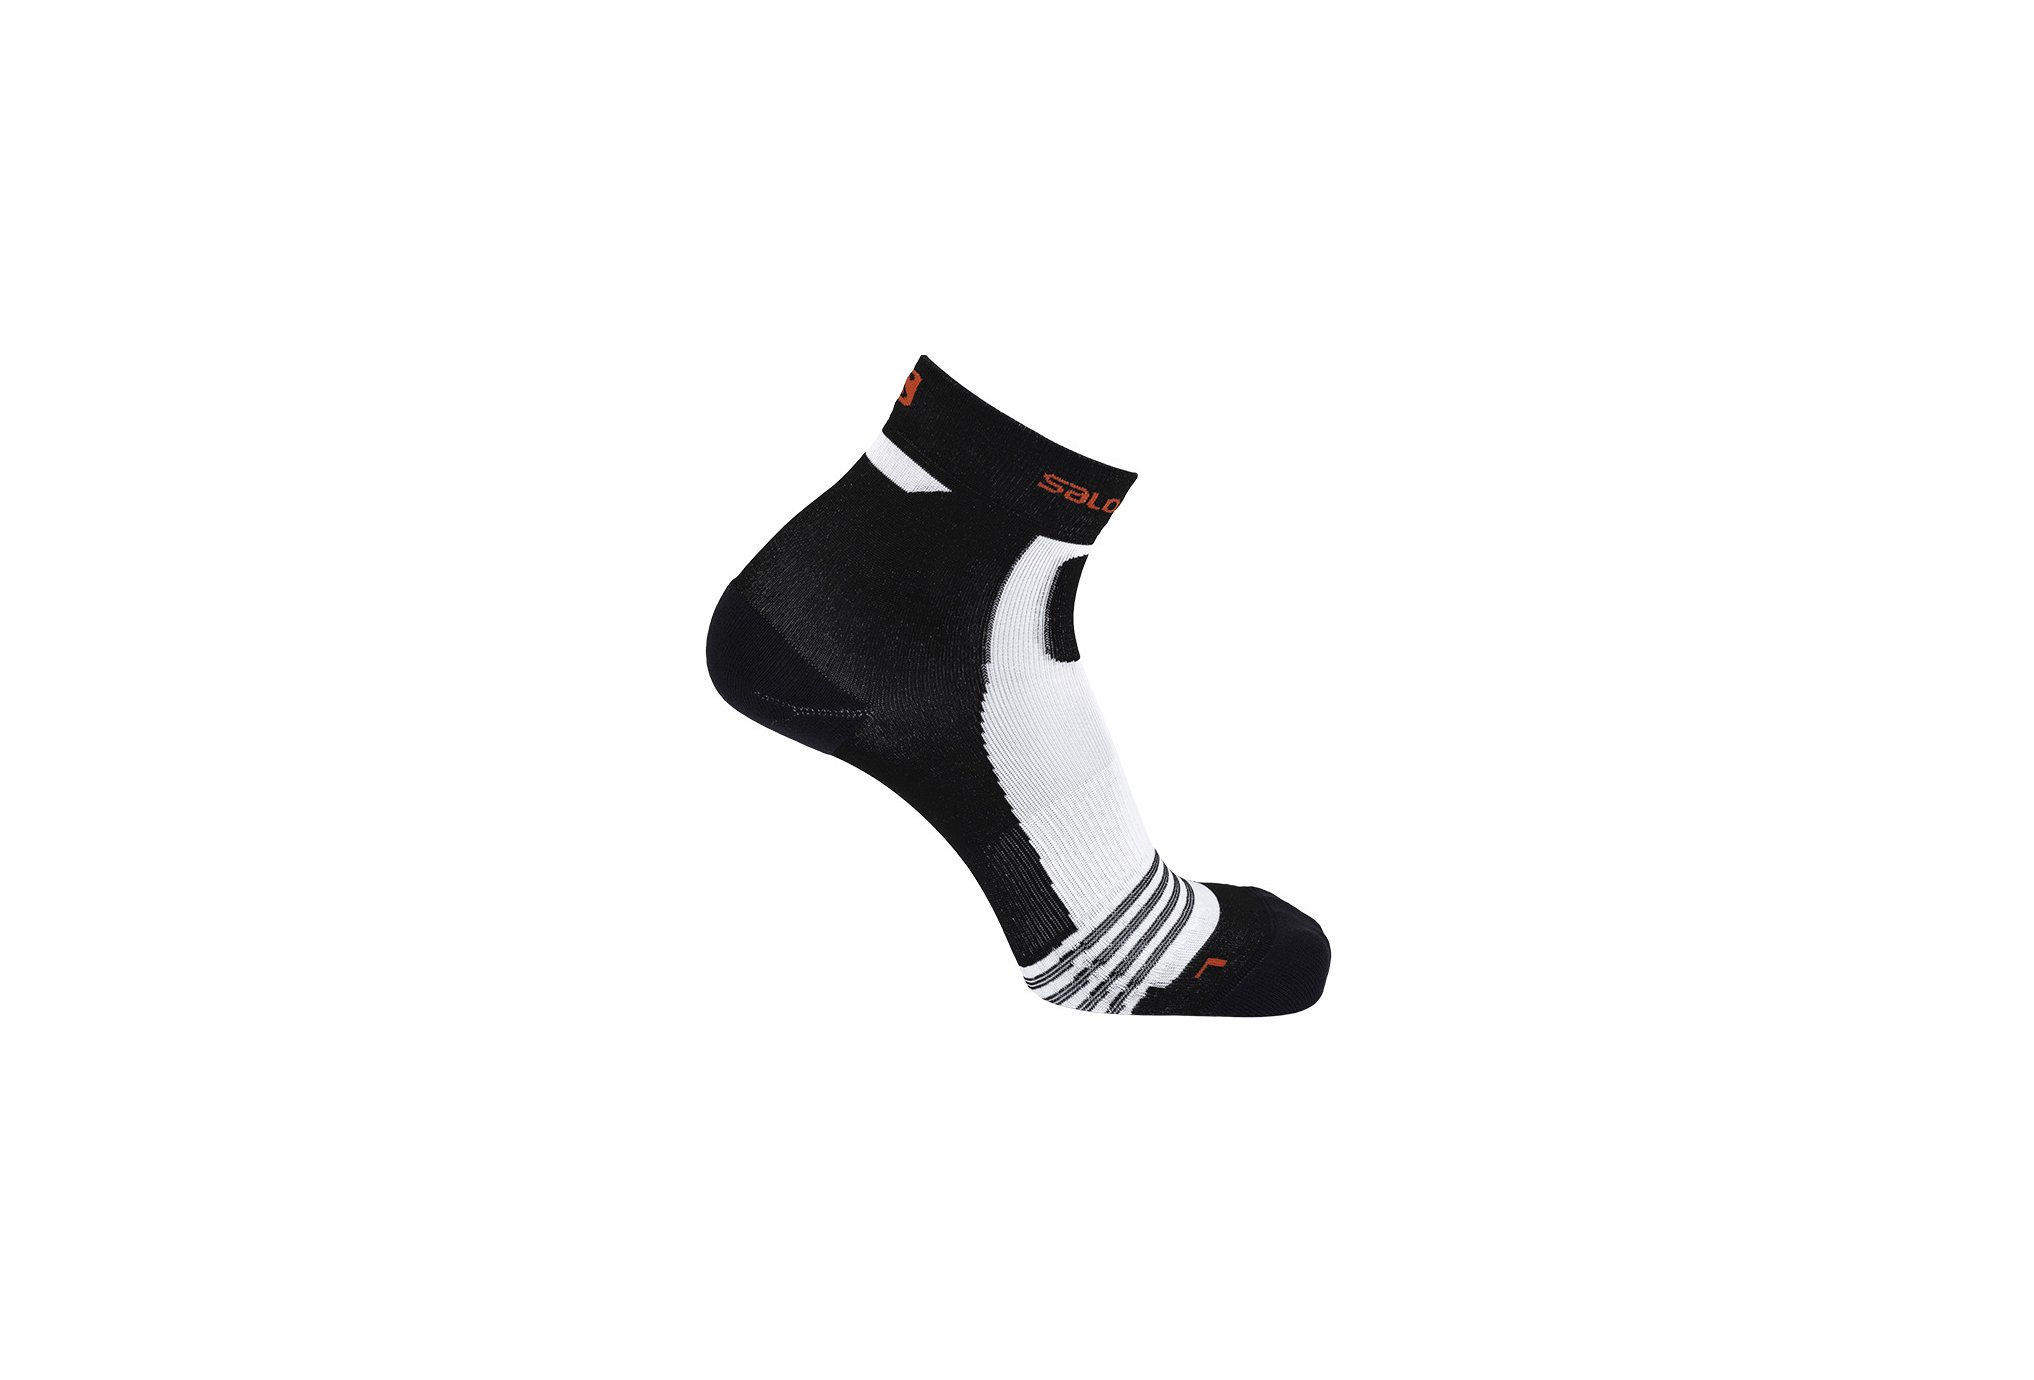 Salomon NSO Short Run Chaussettes